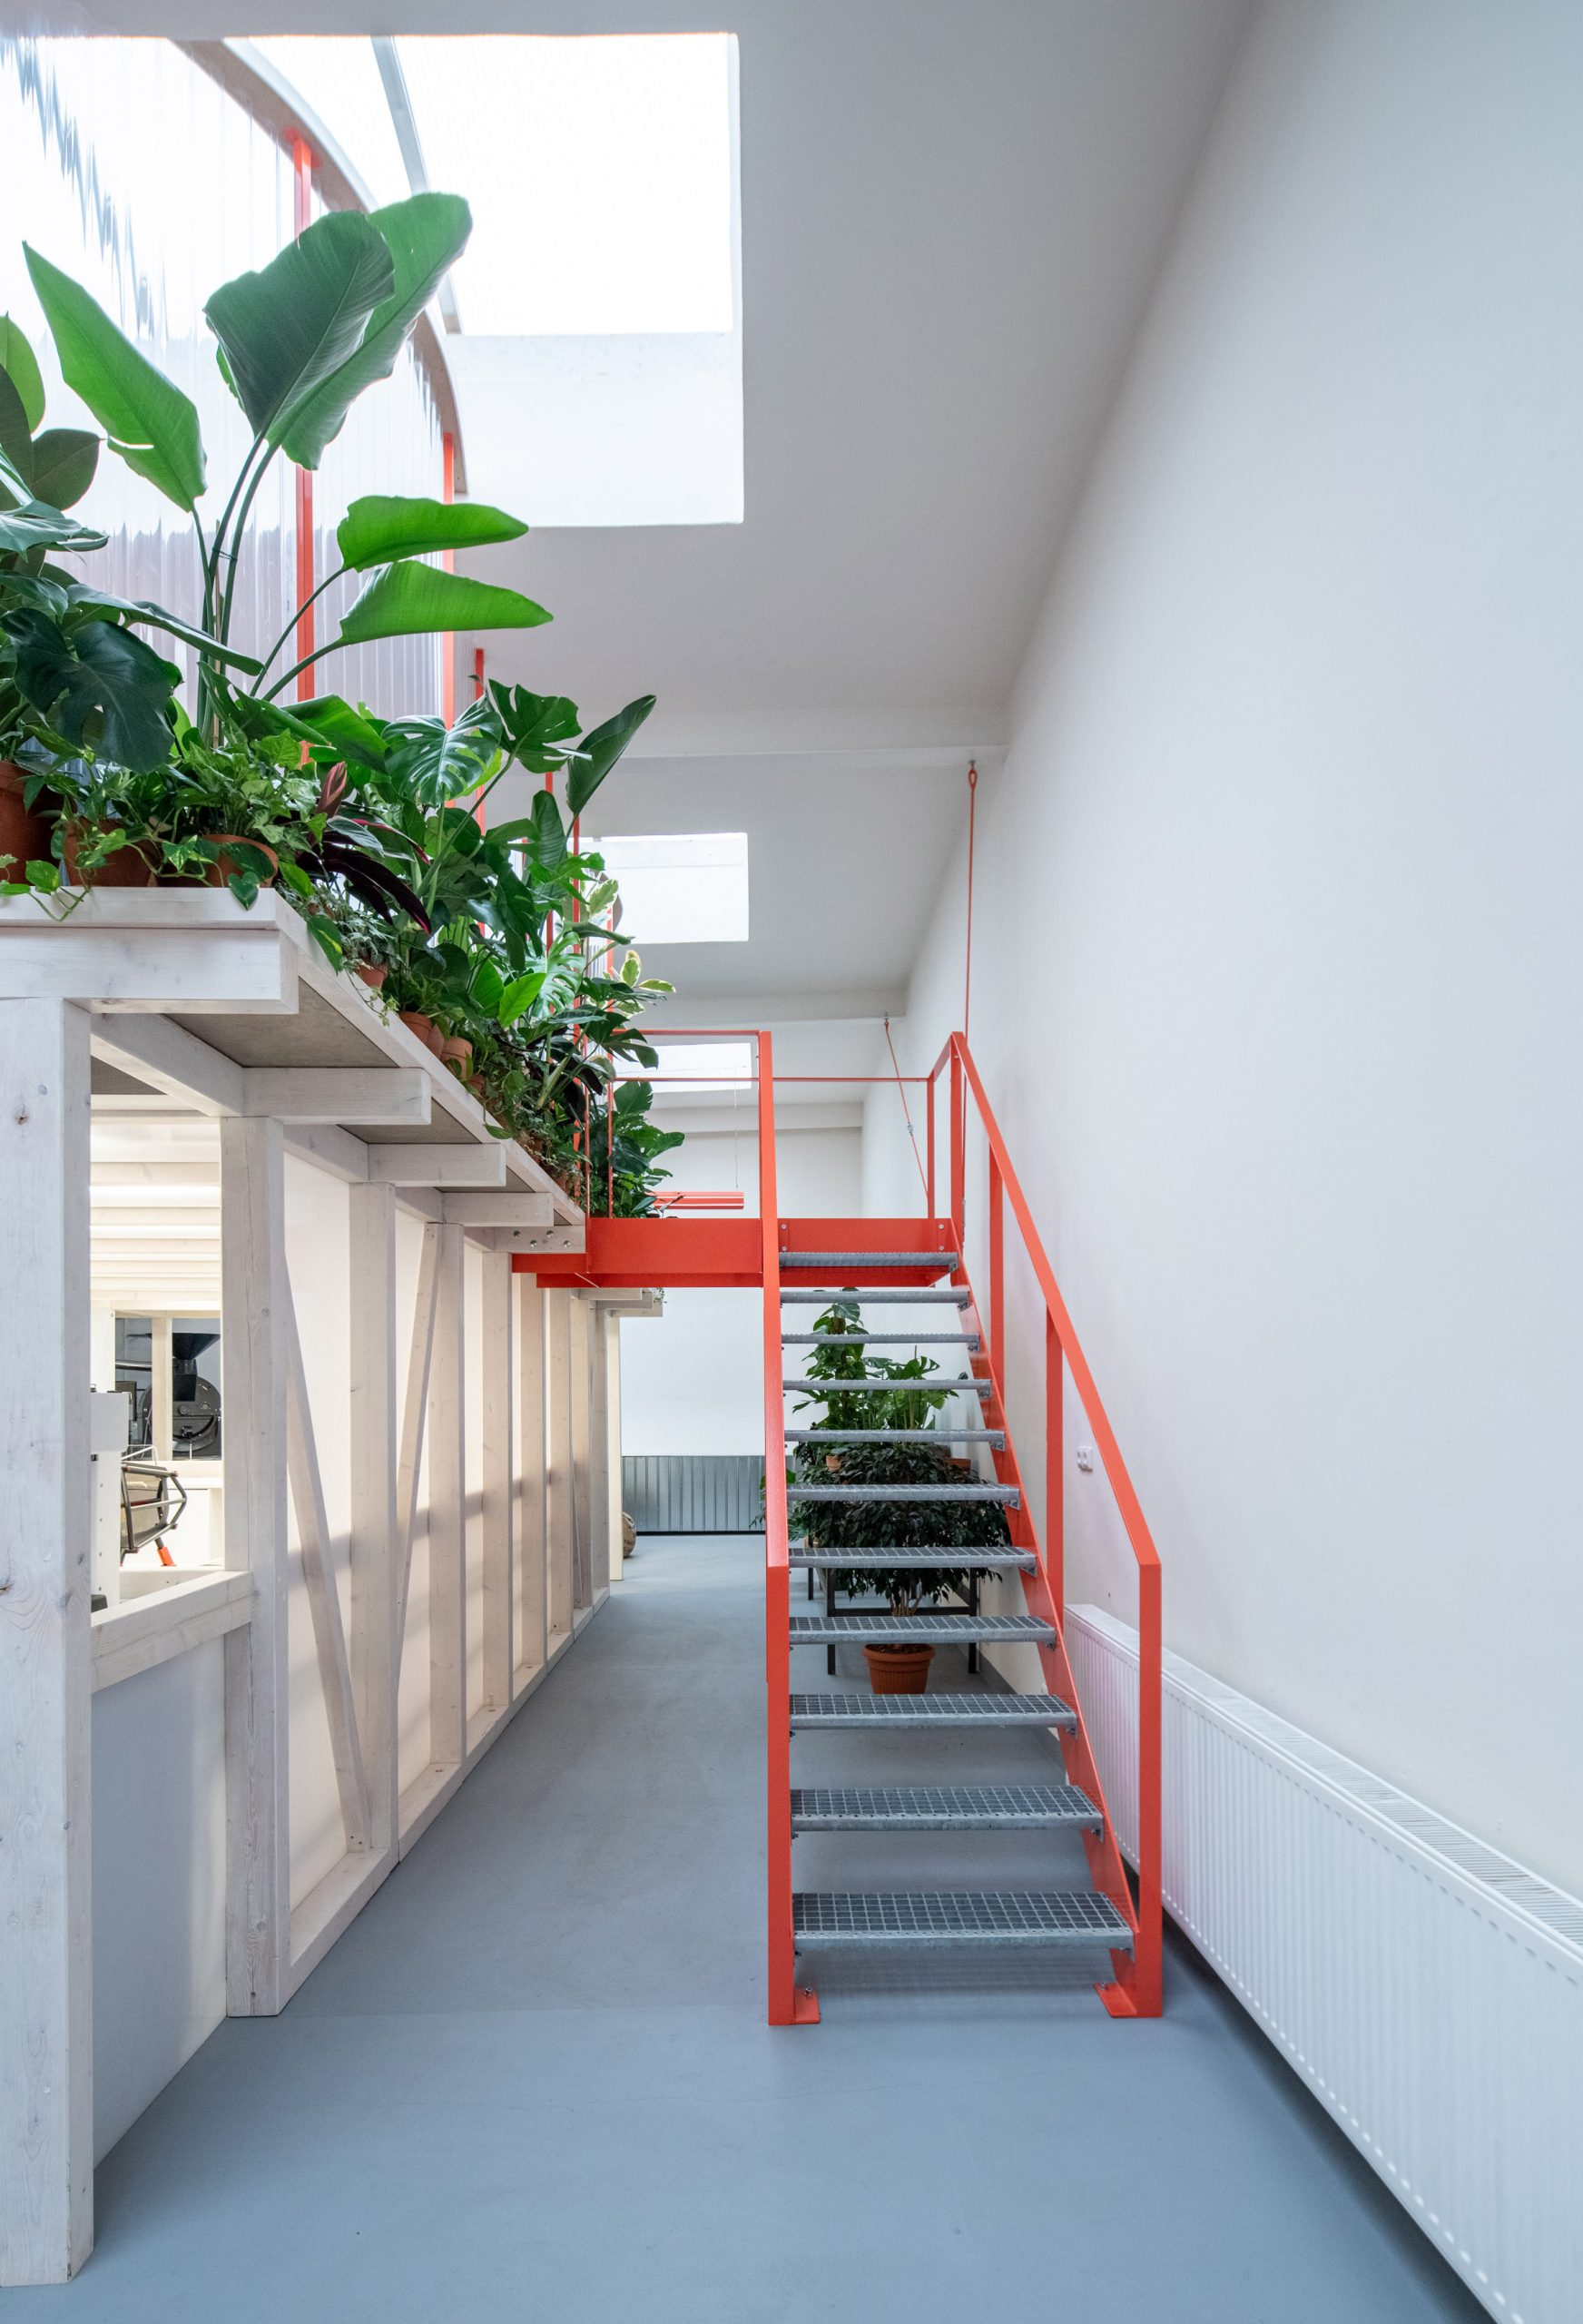 Tangerine-coloured stairs leading up to mezzanine in cafe by Kogaa